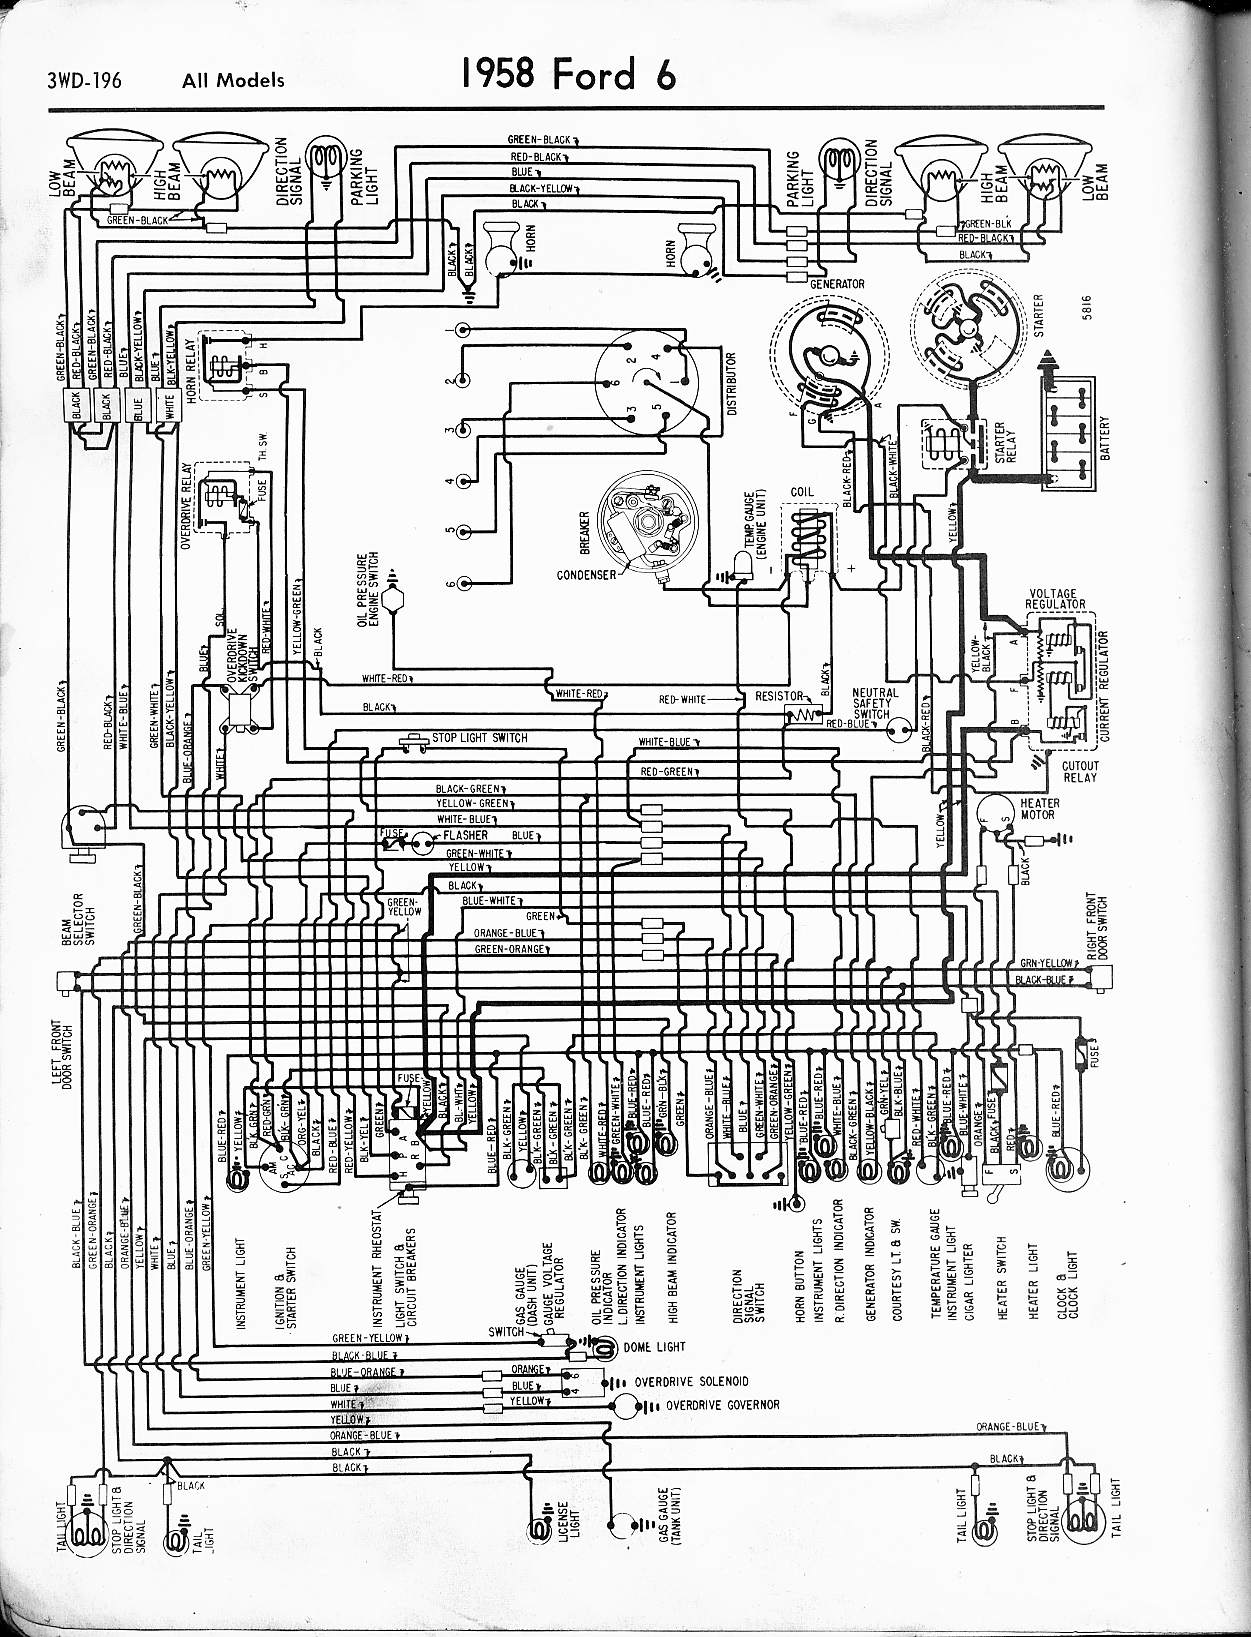 wiring diagrams ford trucks wiring image wiring 51 ford truck wiring diagram jodebal com on wiring diagrams ford trucks